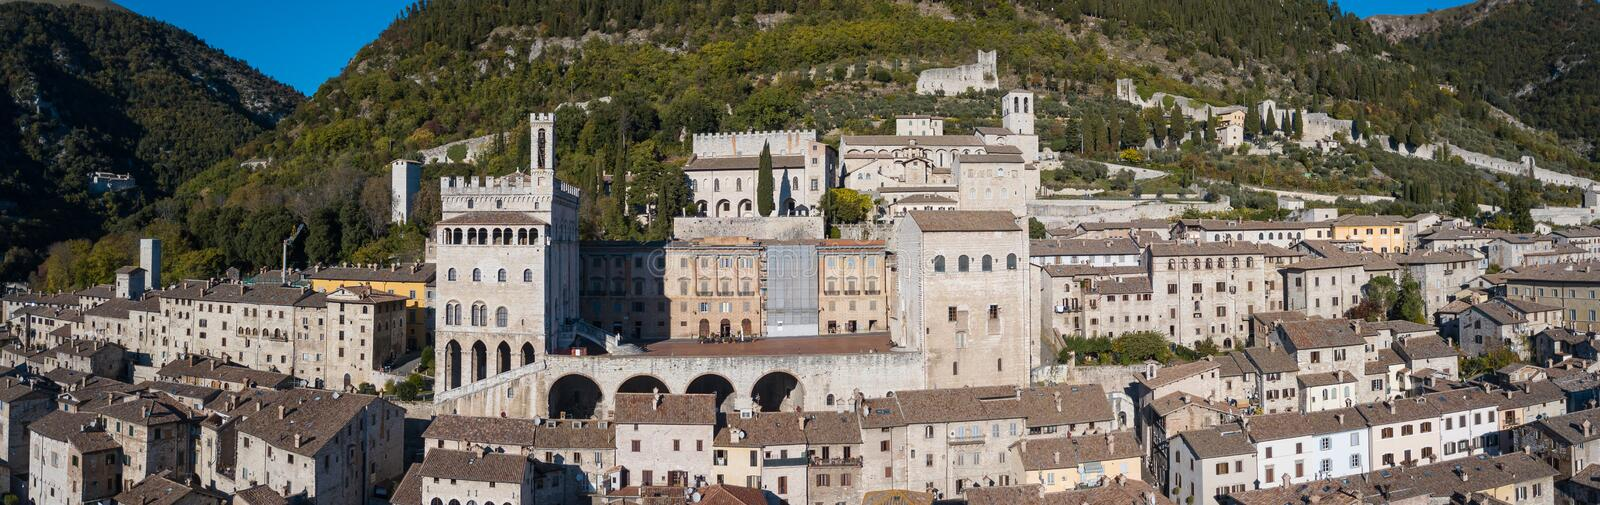 Gubbio, Italy. Drone aerial view of the city center, main square and the historical building called Palazzo dei Consoli. Gubbio, Italy. One of the most beautiful royalty free stock photo